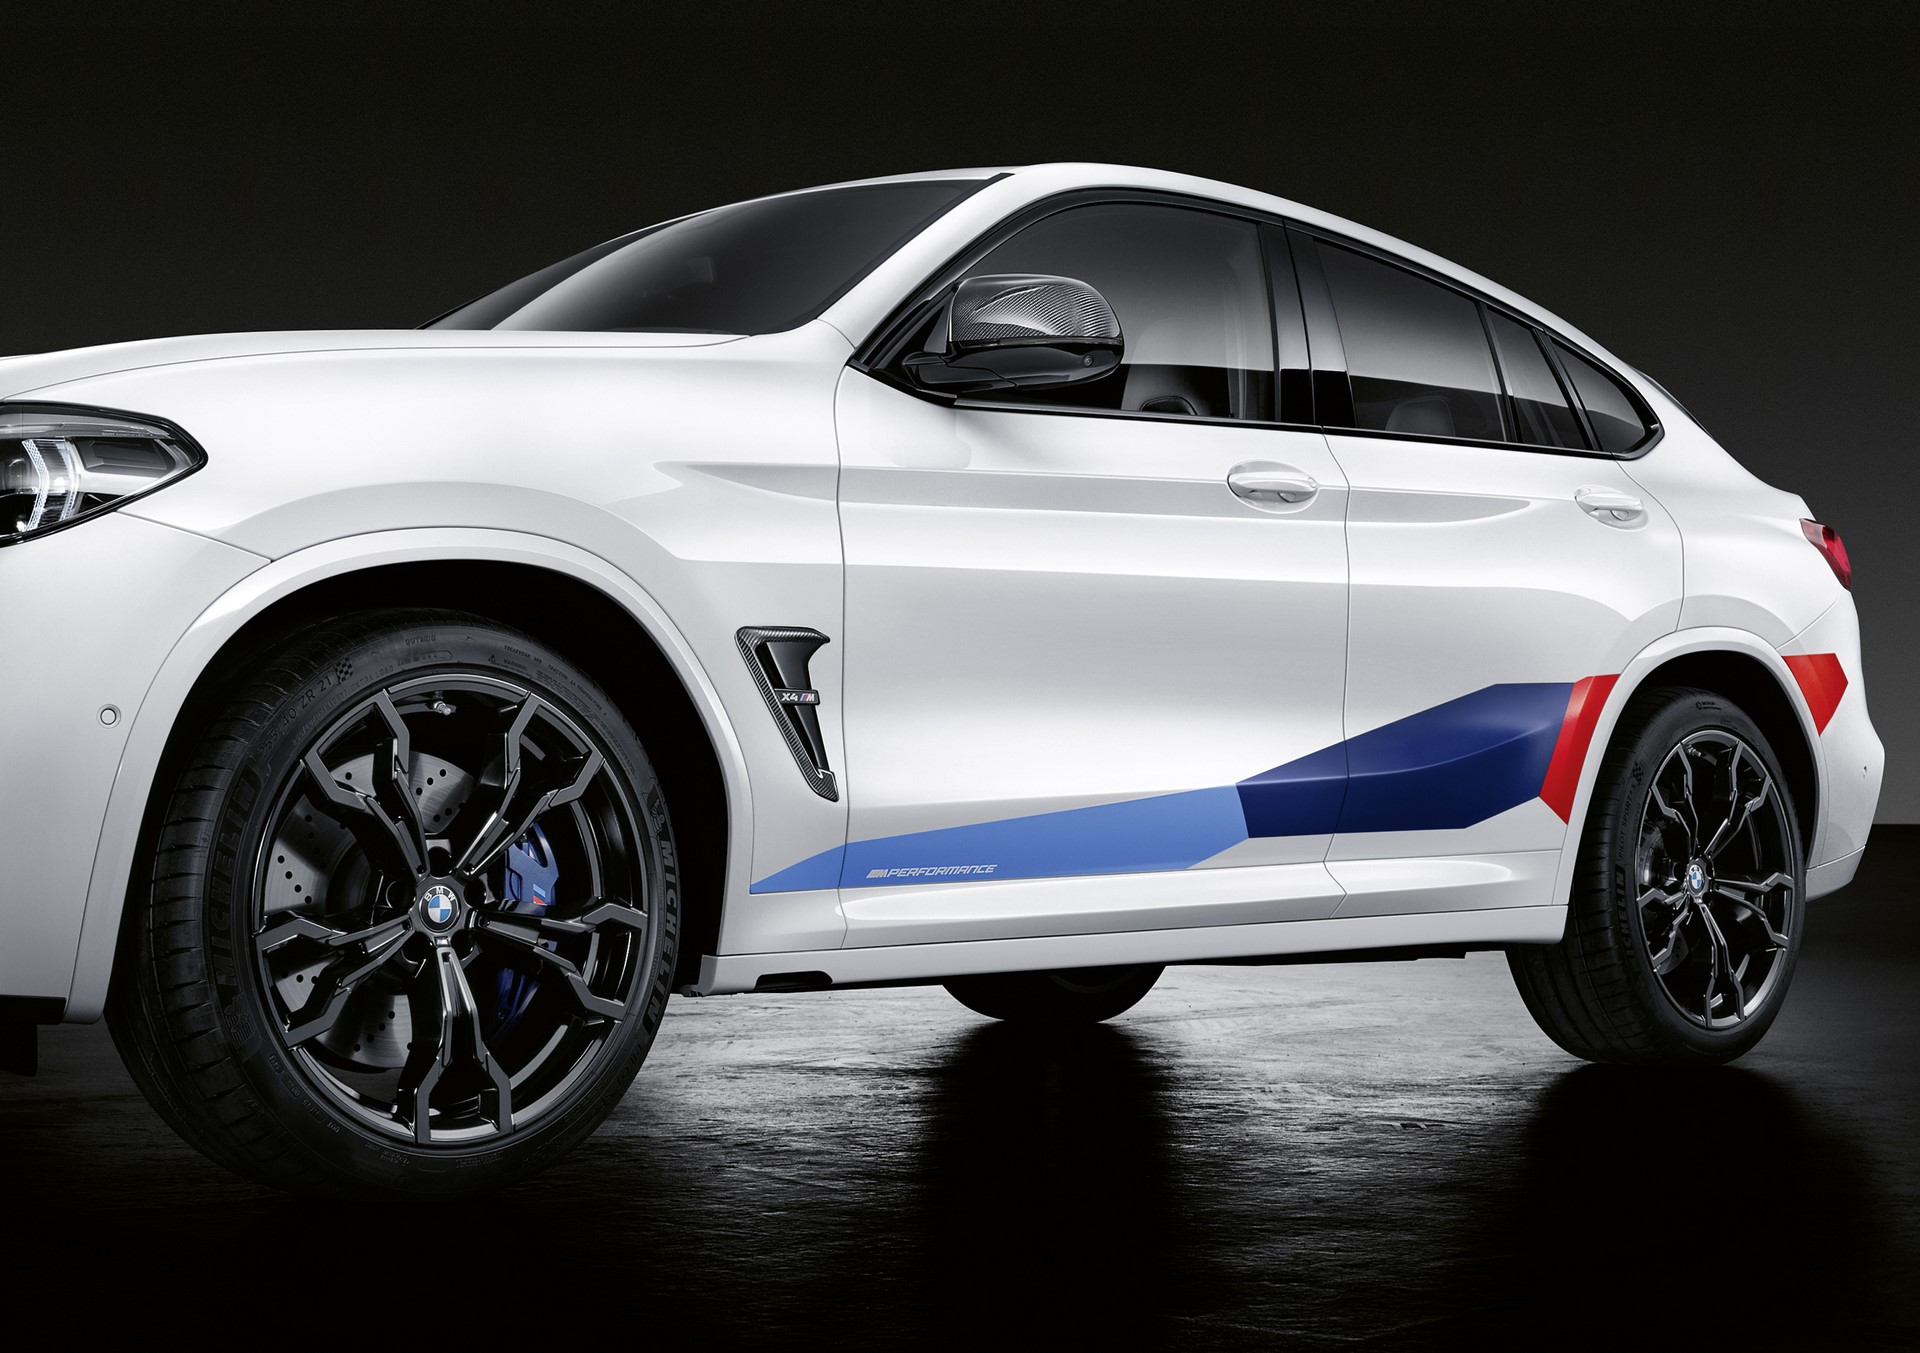 BMW-X3-M-and-BMW-X4-M-M-Performance-Parts-8